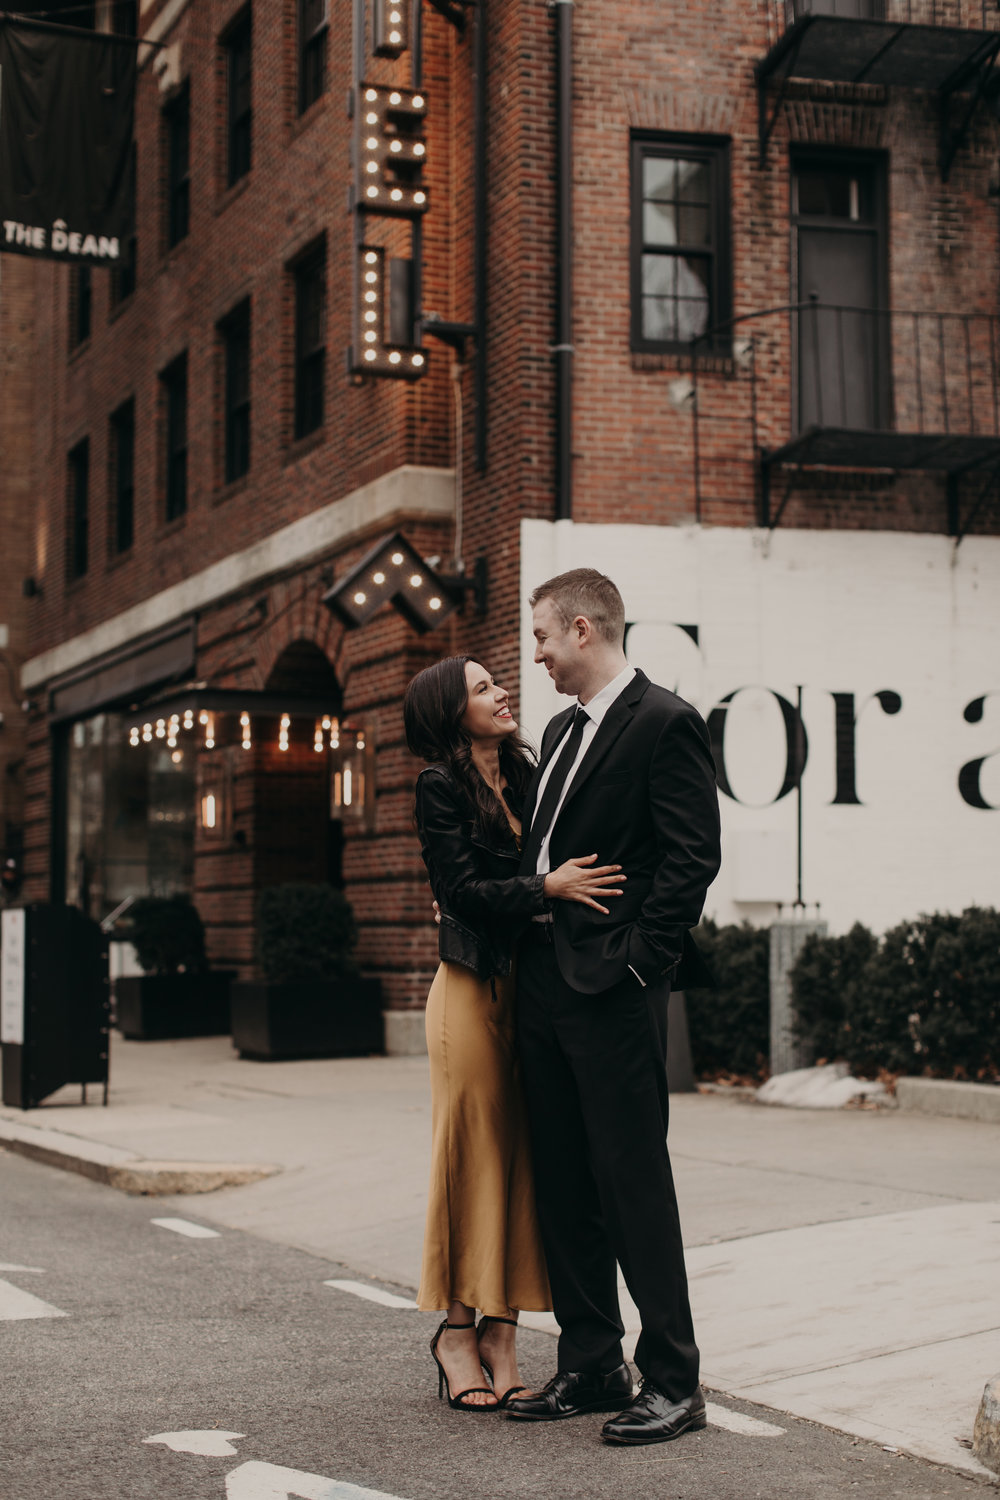 Chris_Marissa_Downtown_Providence_Rhode_Island_Engagement_Session_002.jpeg